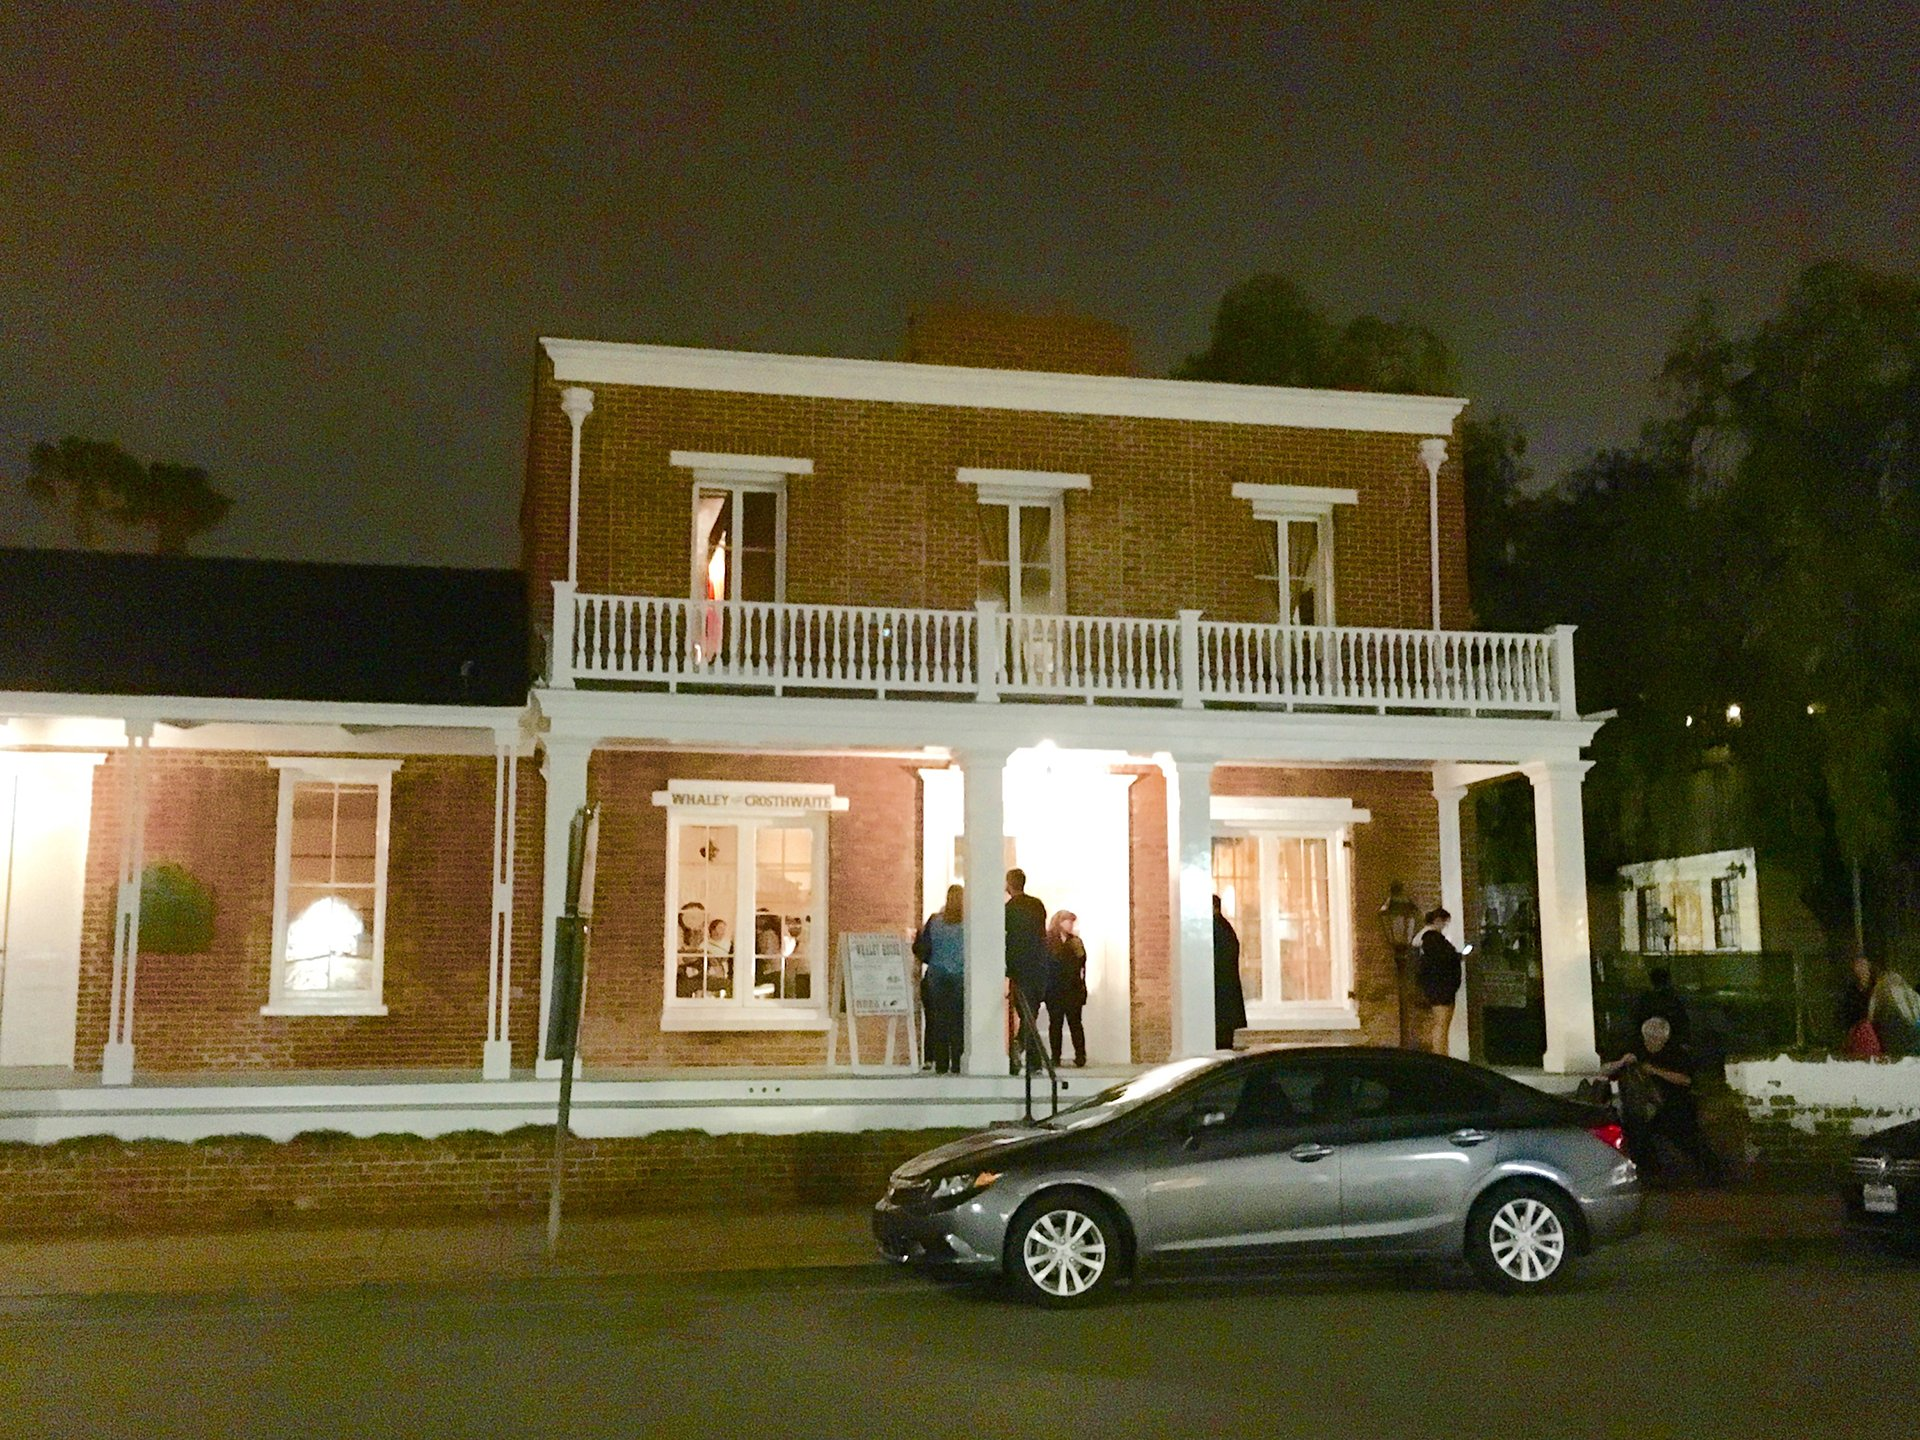 The Whaley House is noted as one of the most haunted houses in the US